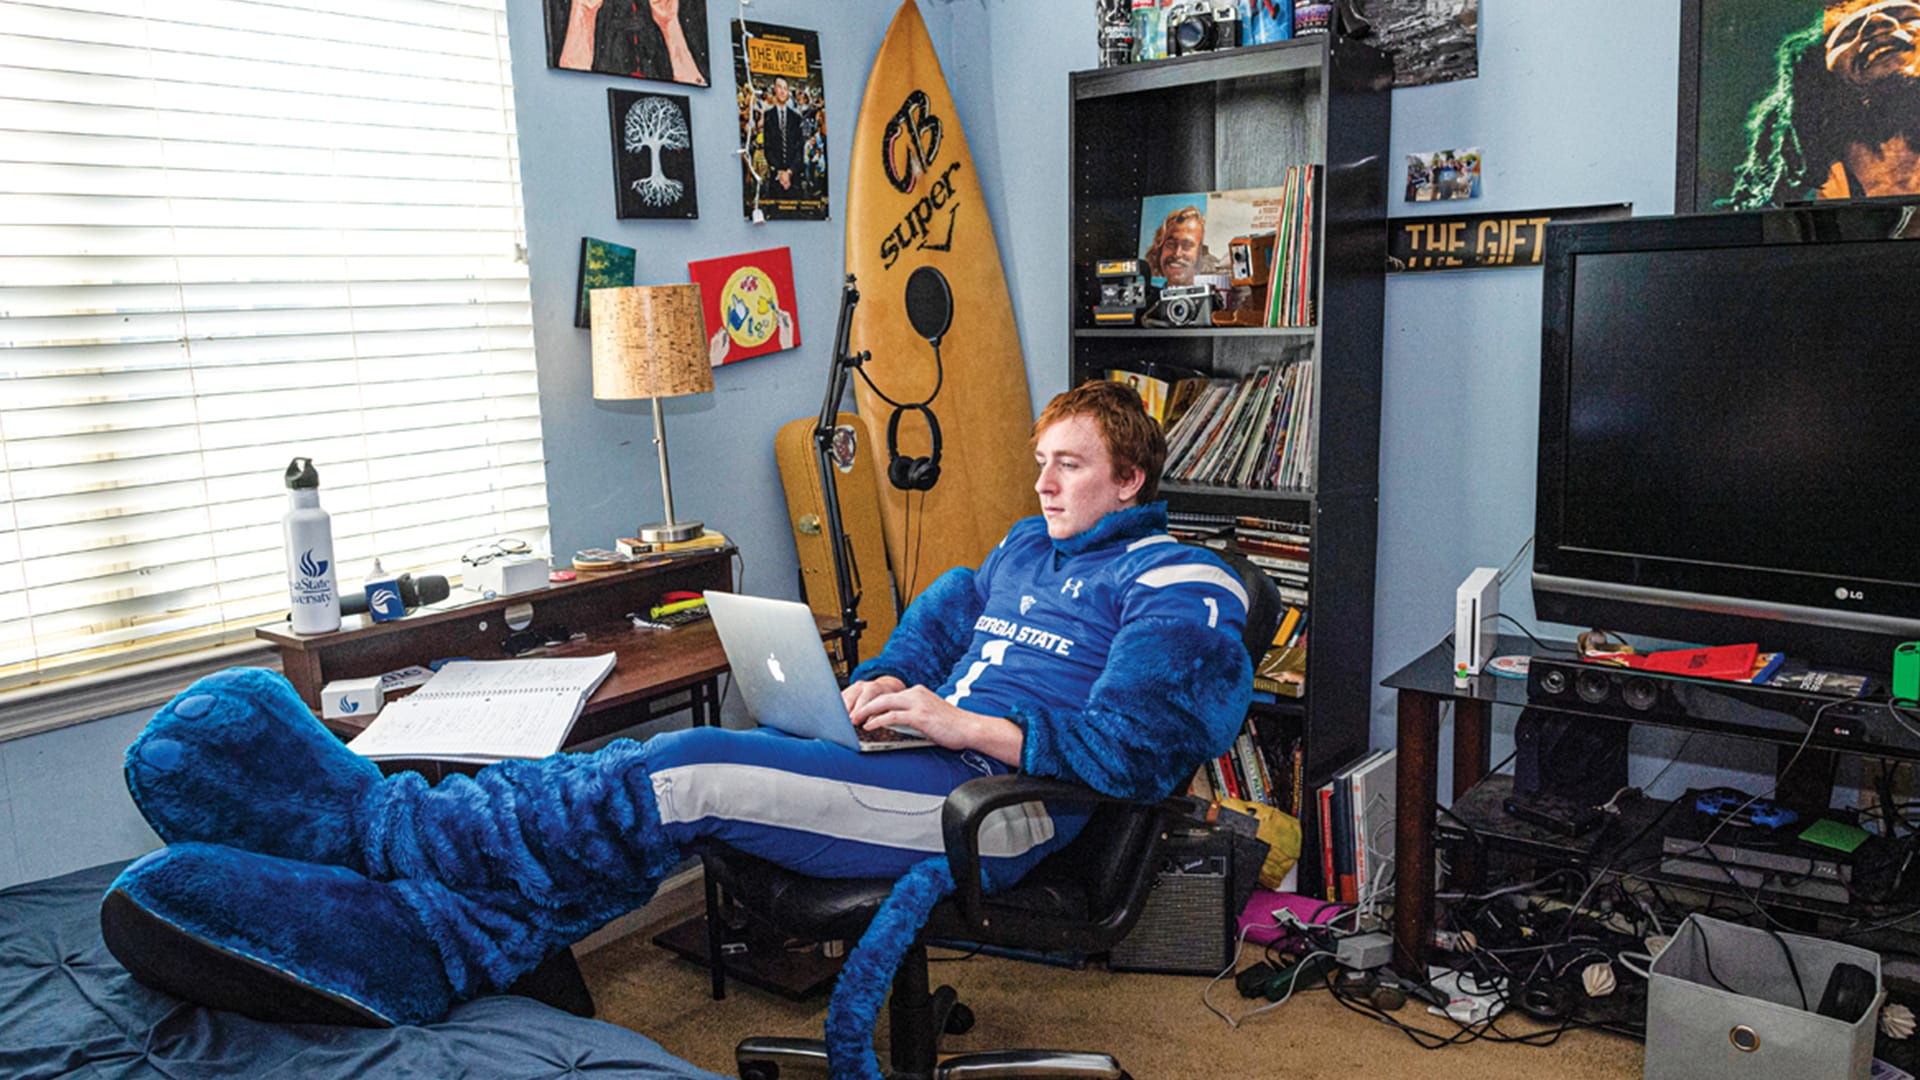 Austin Birchell (B.A. '20) sitting in his room with Pounce suit on.